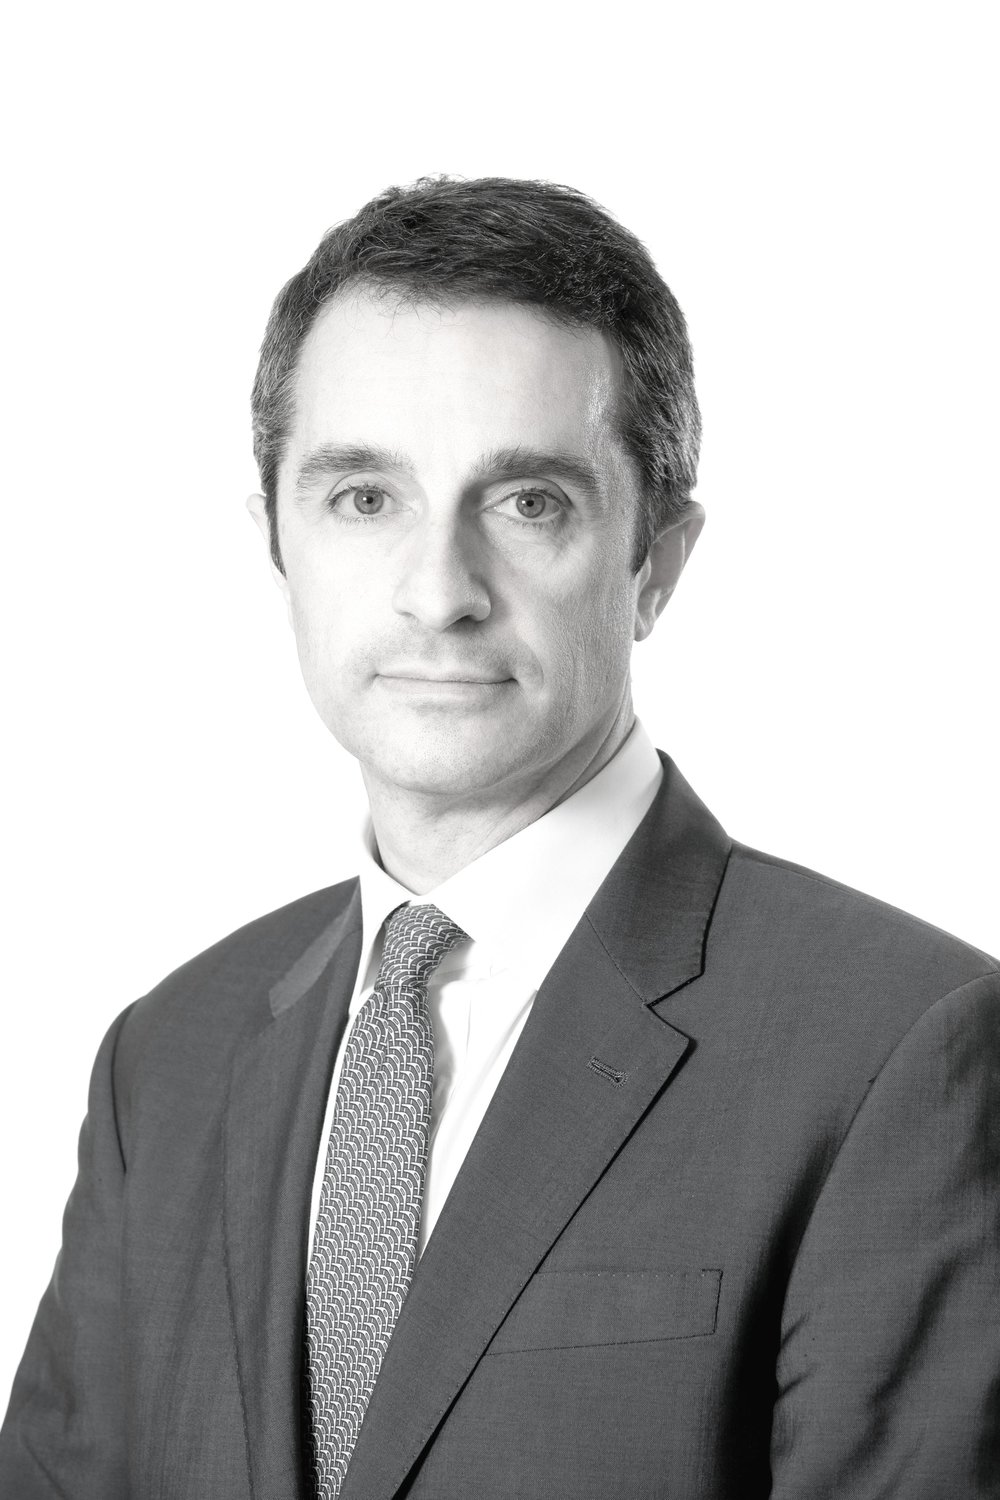 Antonio Costanzo, EMMAC Life Sciences